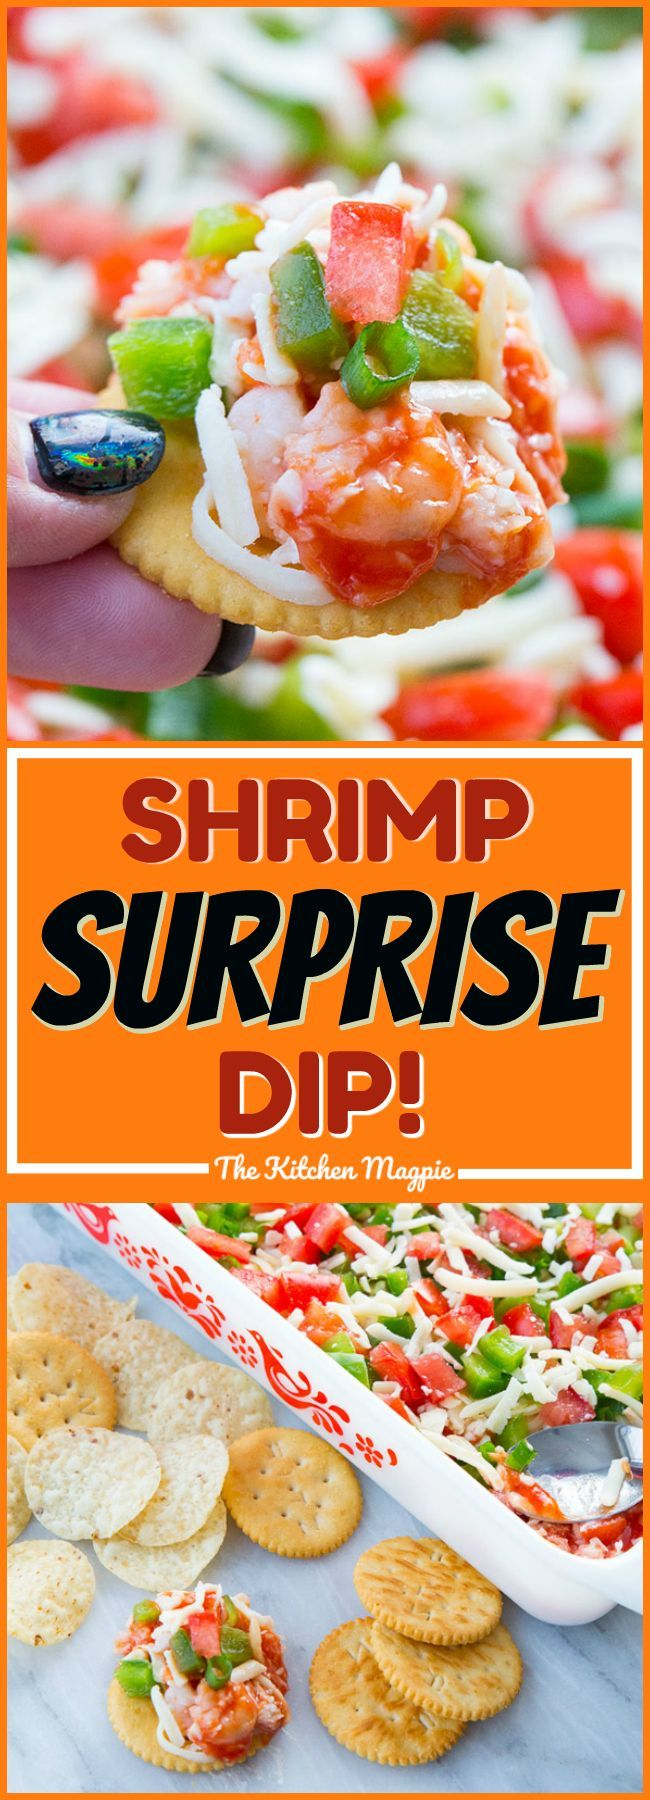 Shrimp Surprise Spread - The Best Seafood Dip Ever! This dip or spread is perfect for entertaining - especially on Game Day! #dip #recipe #shrimp